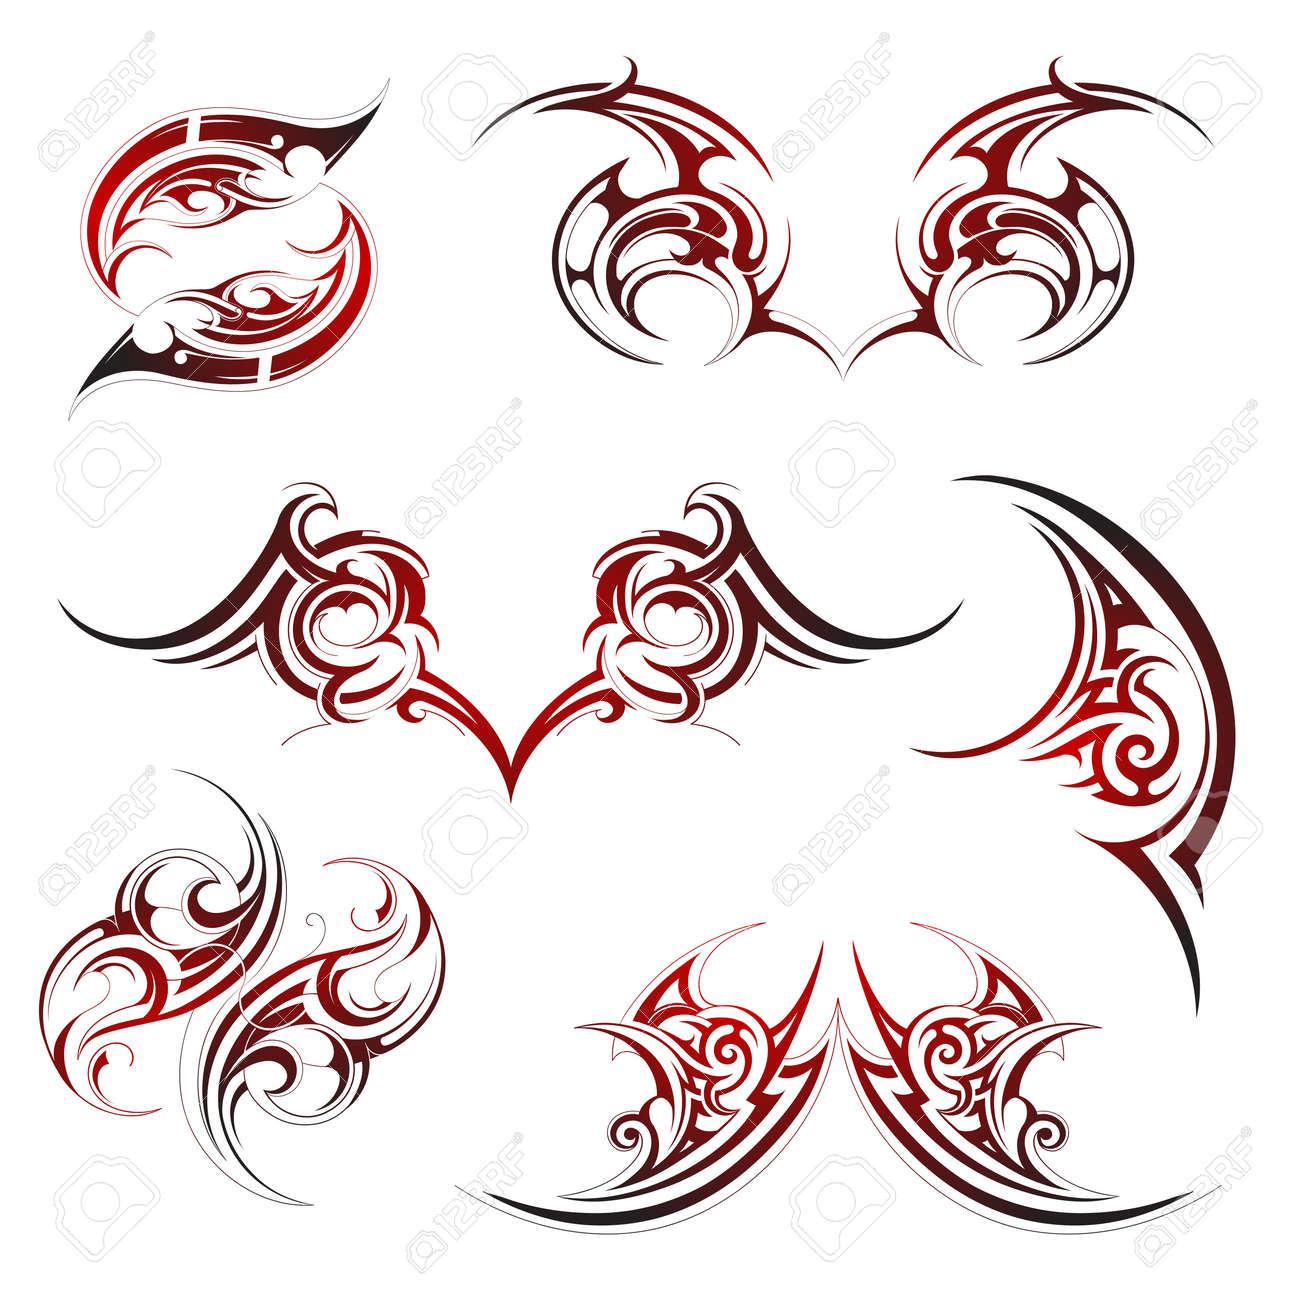 Tribal tattoo set with fire flame ornaments - 34229004